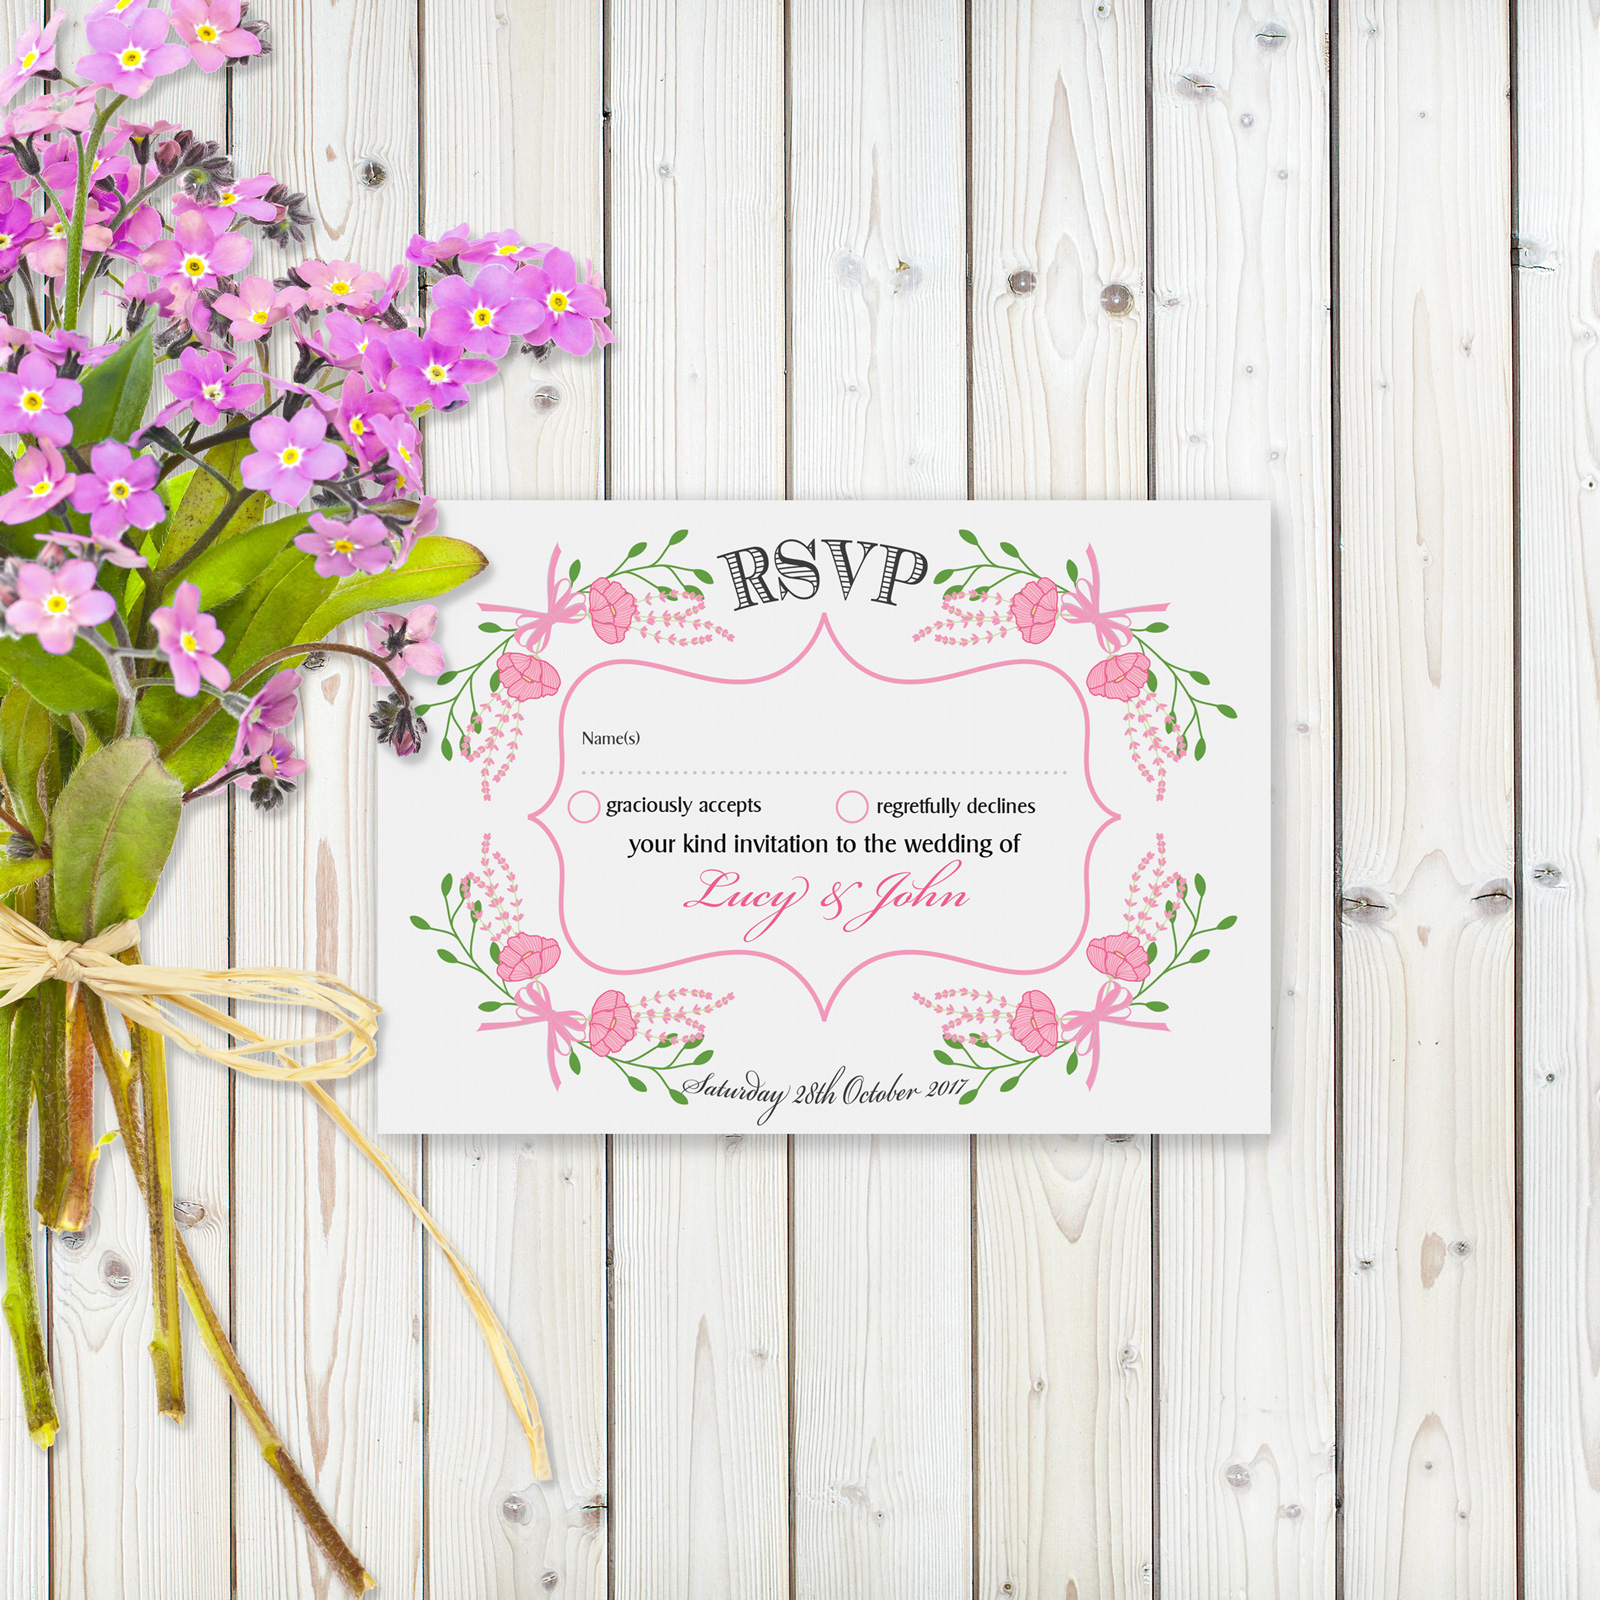 Floral Fantasy Pink on White Card - RSVP Card